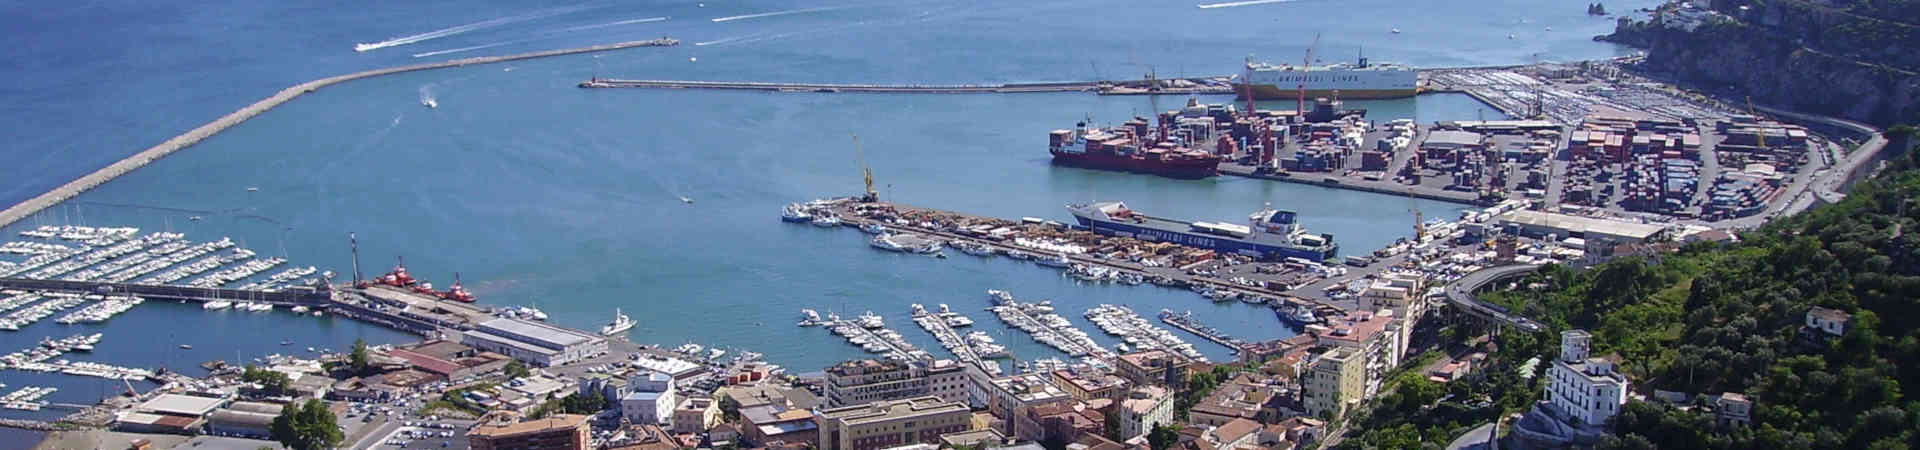 Resource image of the destination port Salerno for the ferry route Tunis - Salerno